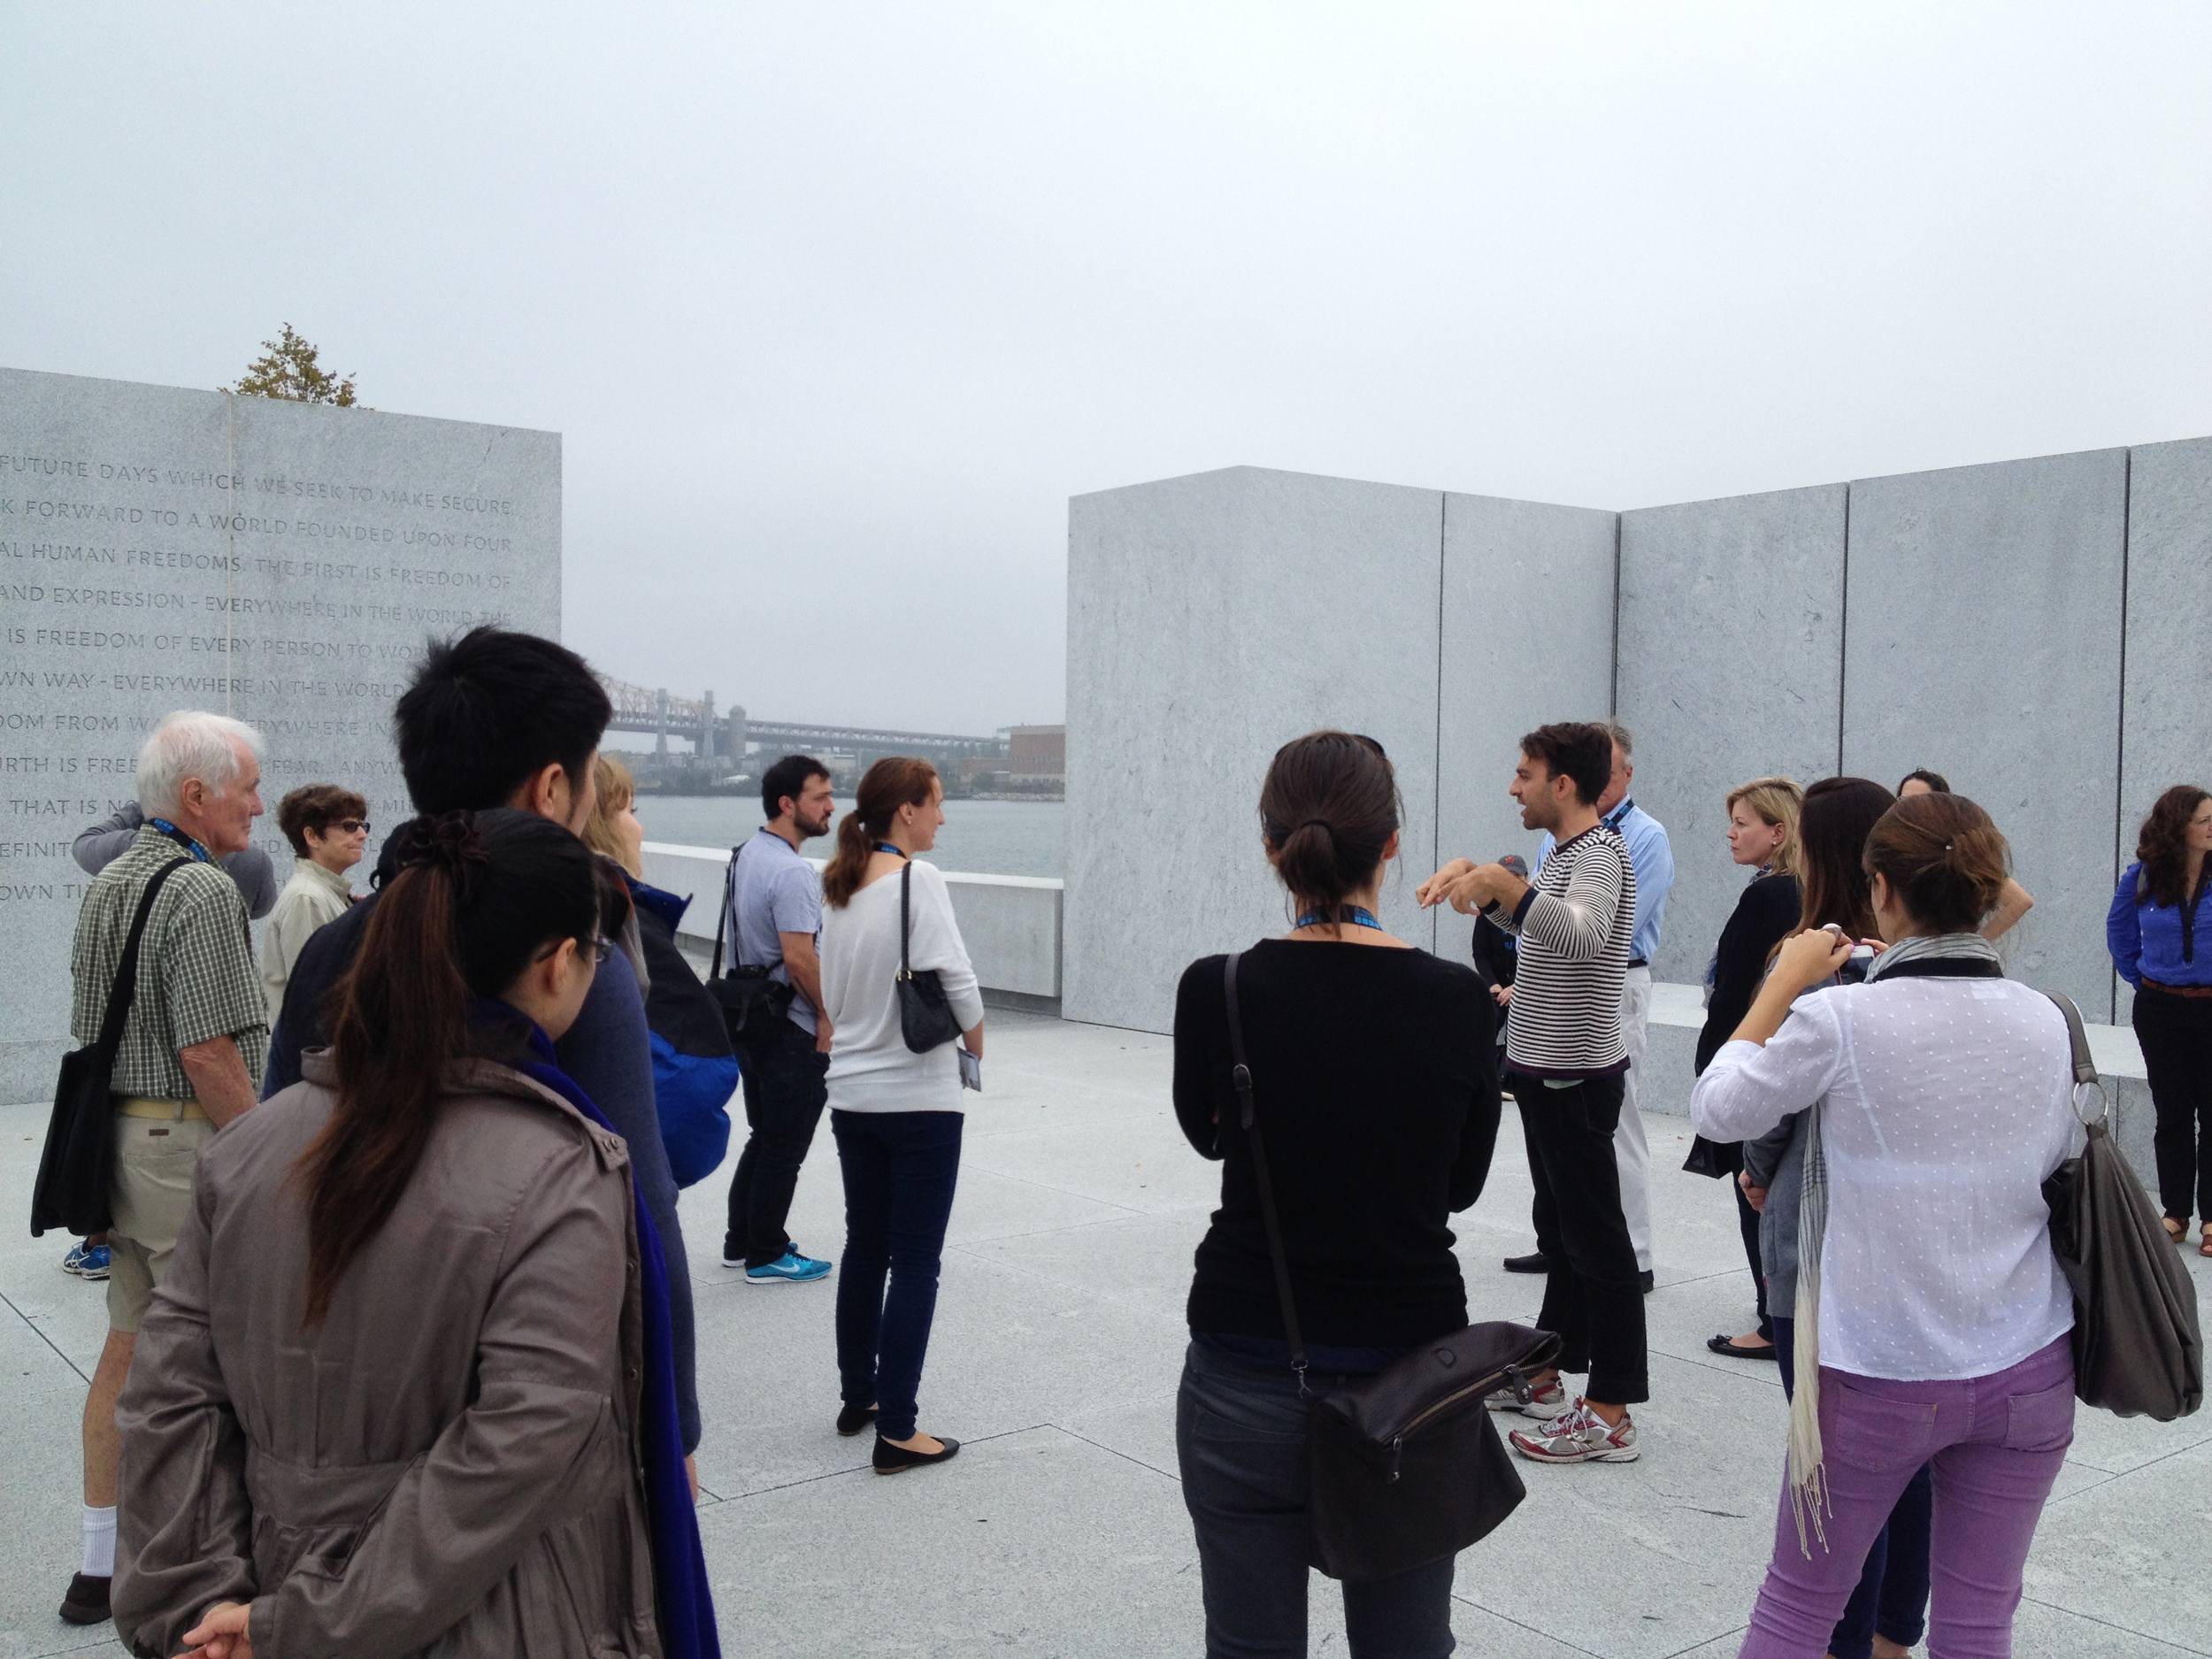 The tour continued to the Room where Stephen described Louis Kahn's design of the Room.